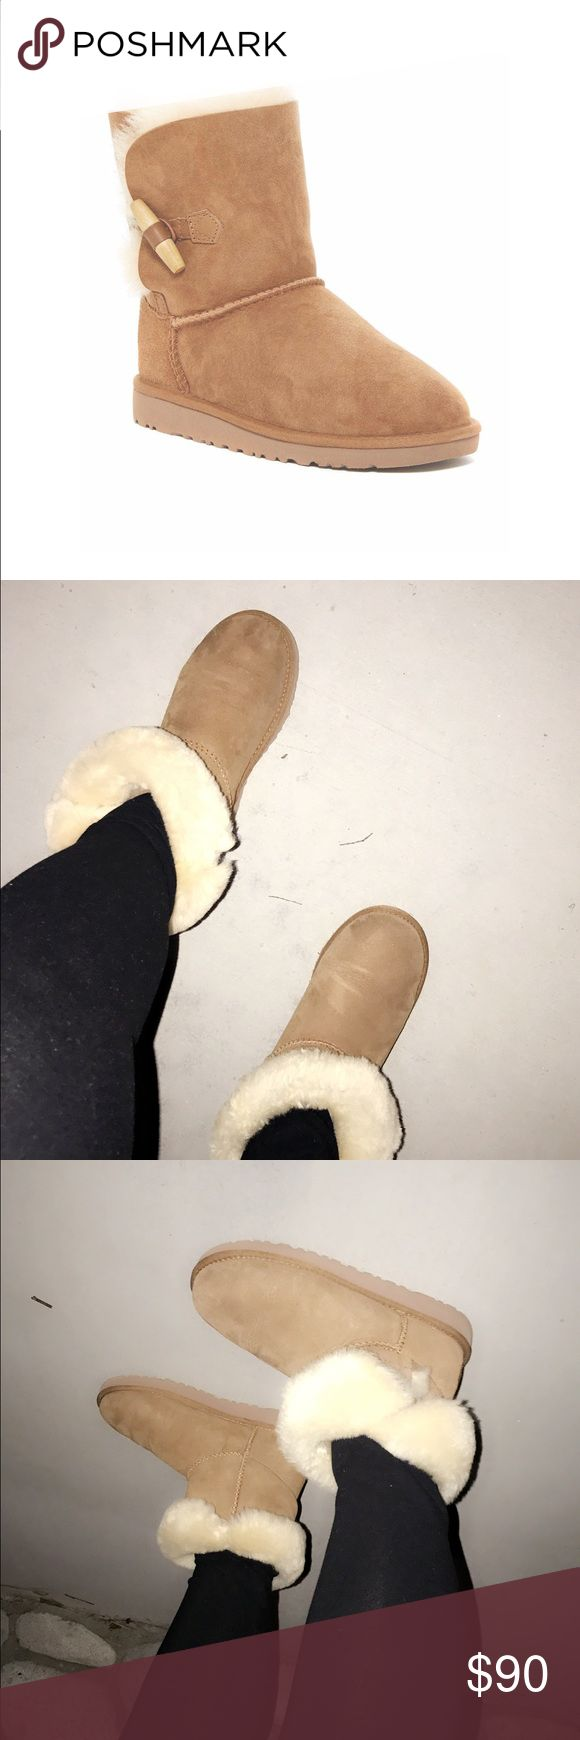 Short Uggs In perfect condition worn them three times Polly ! These are kids size 5 which is equal to women size 7 ! Perfect condition does come with the box and everything to proof it's Authentic ! Got it from the Ugg store in Glendale Ca ! Open to offers no trade please ! UGG Shoes Winter & Rain Boots